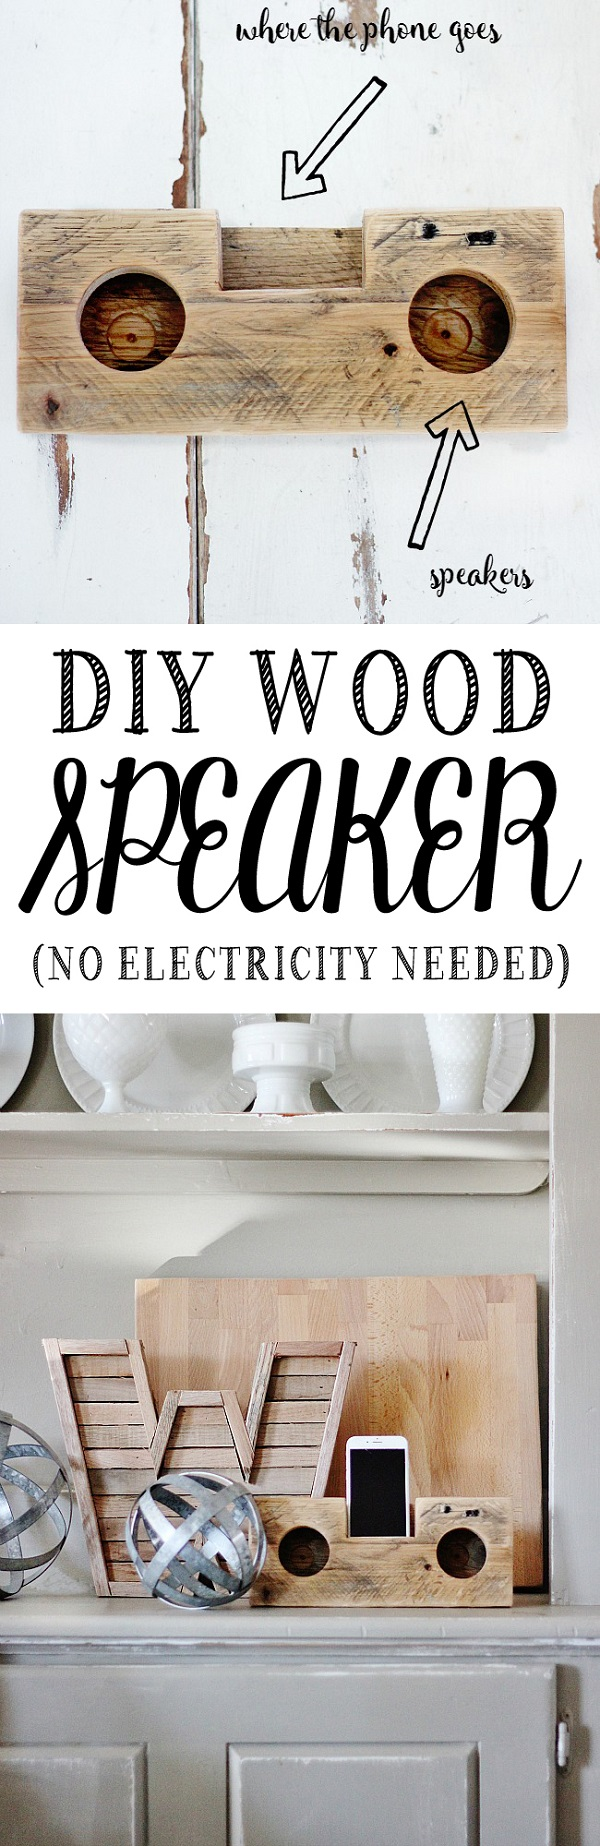 Check out this easy idea on how to make a #DIY #wood speaker that you can make and #sell #crafts #project #homedecor